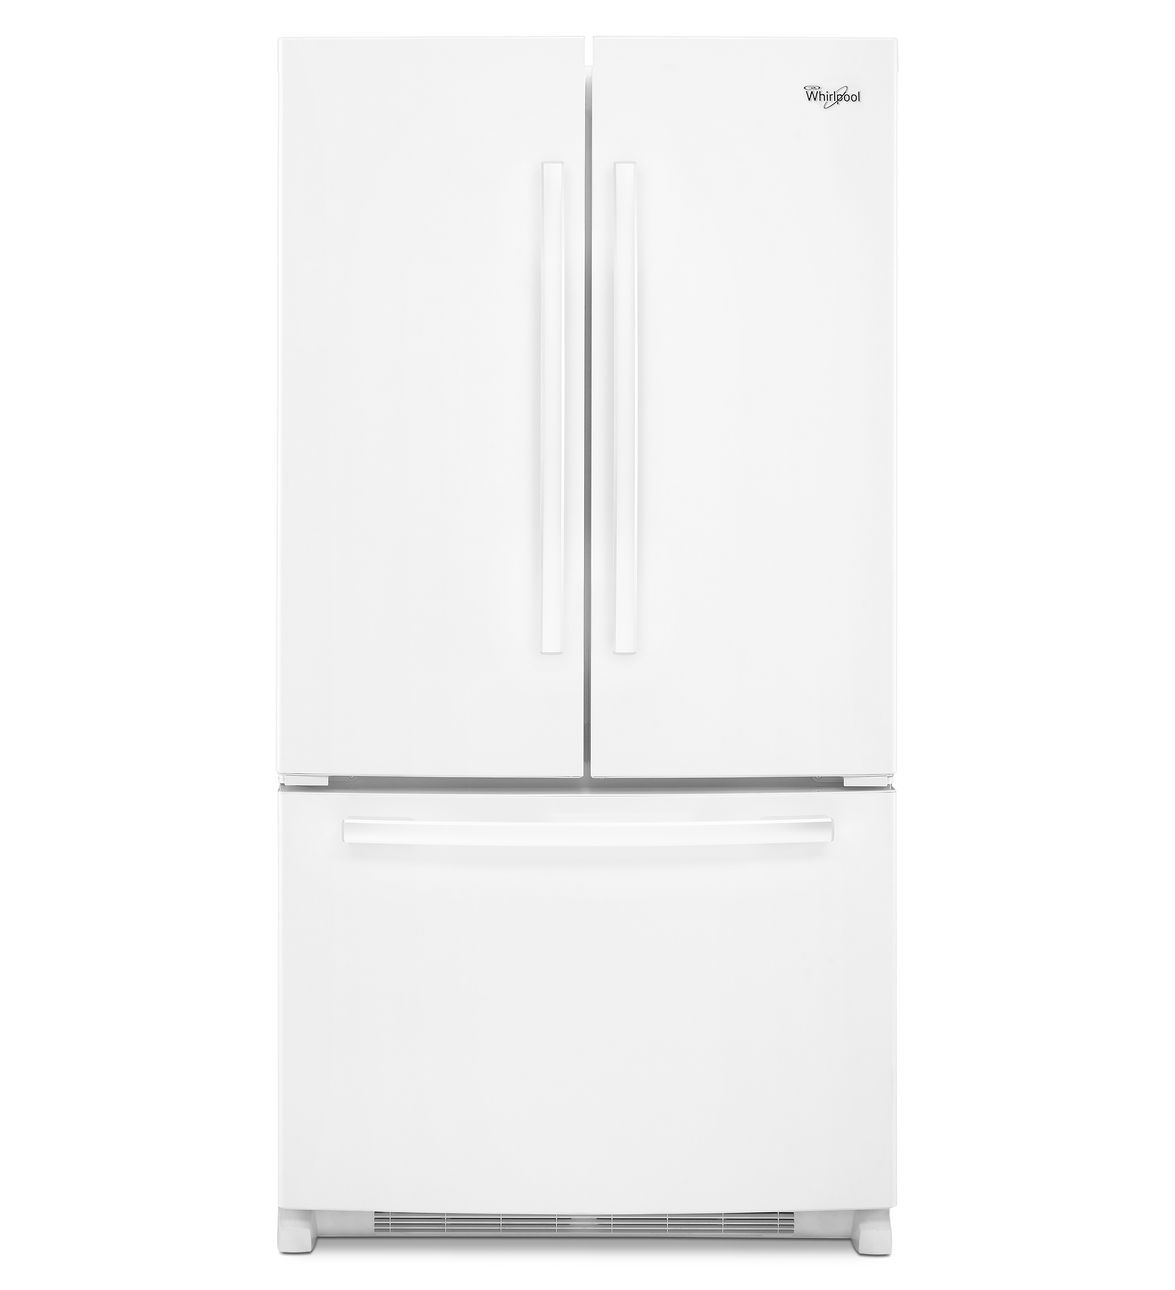 Whirlpool 36 Inch Wide French Door Refrigerator More